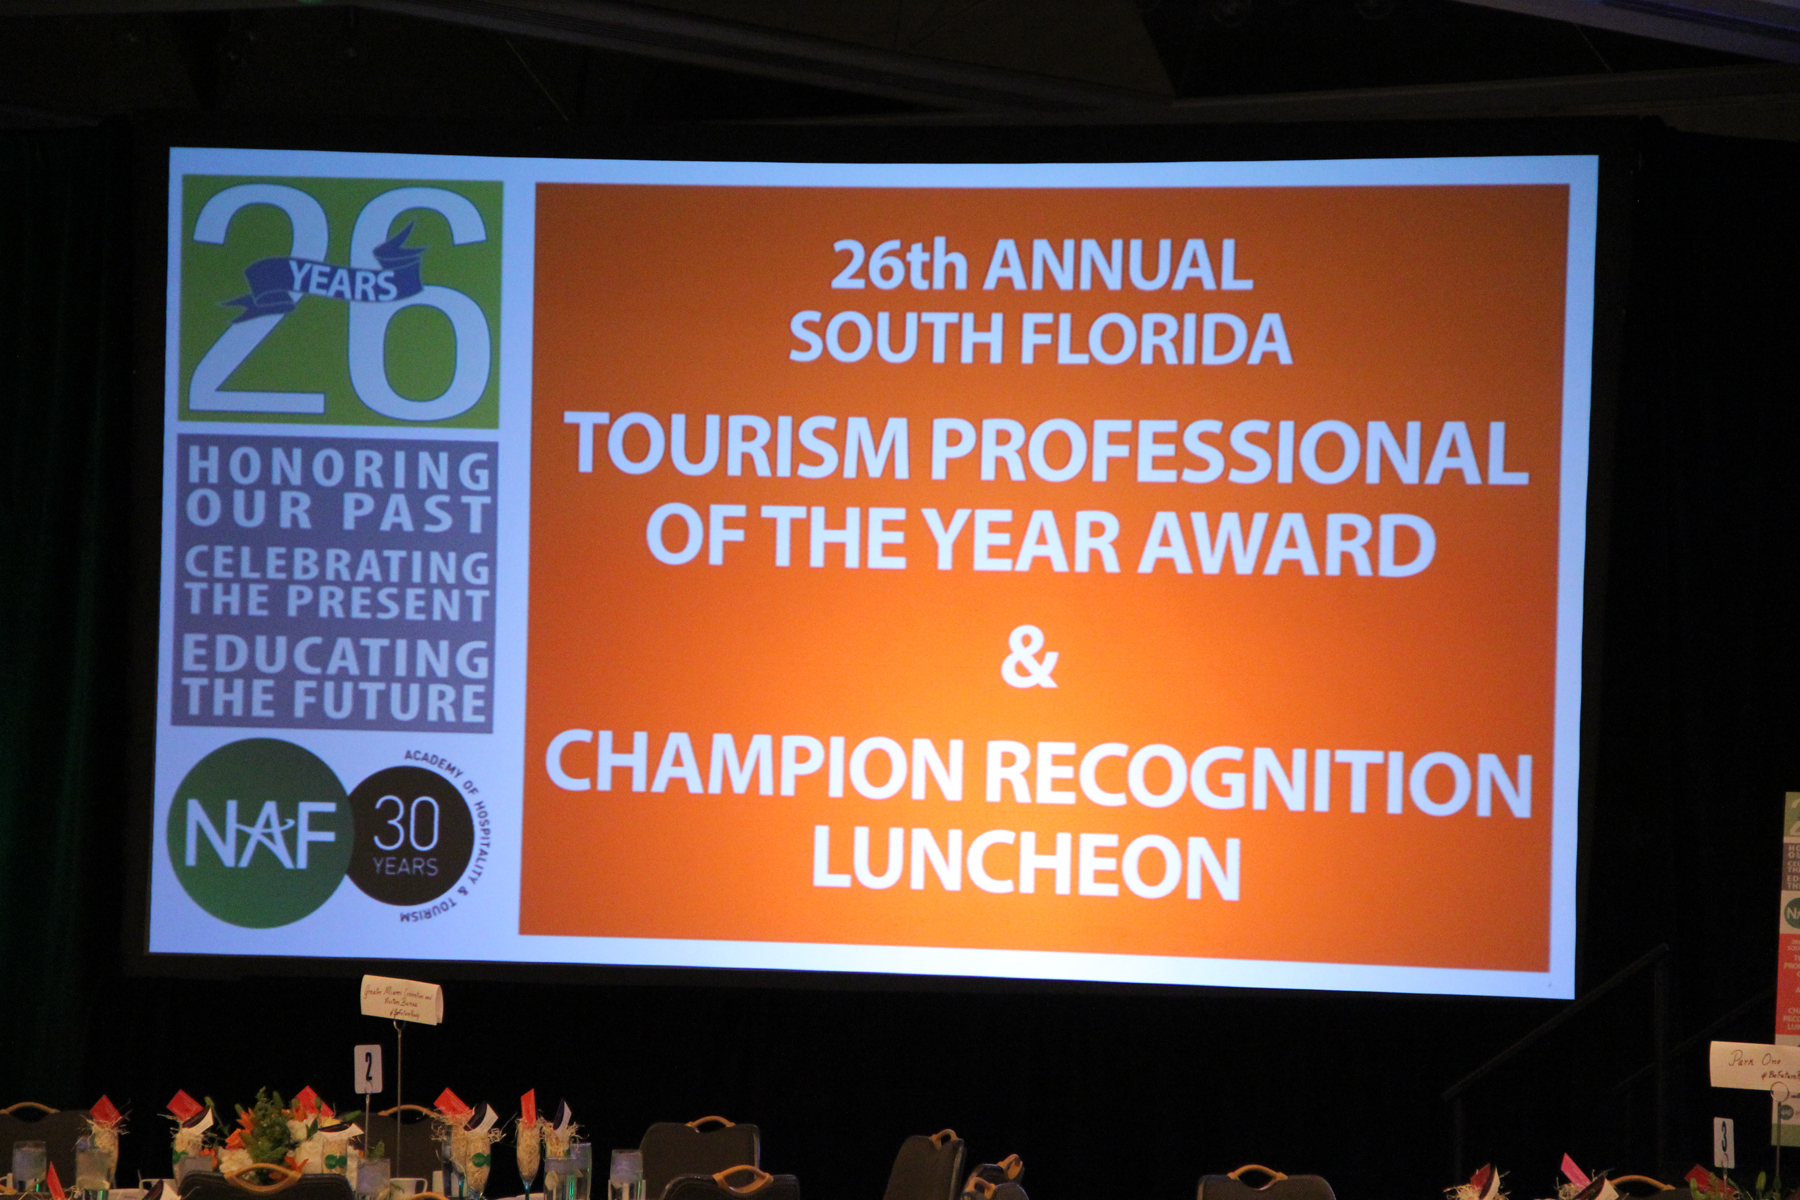 hospitality tourism miami dade career technical education 2016 annual hospitality tourism luncheon